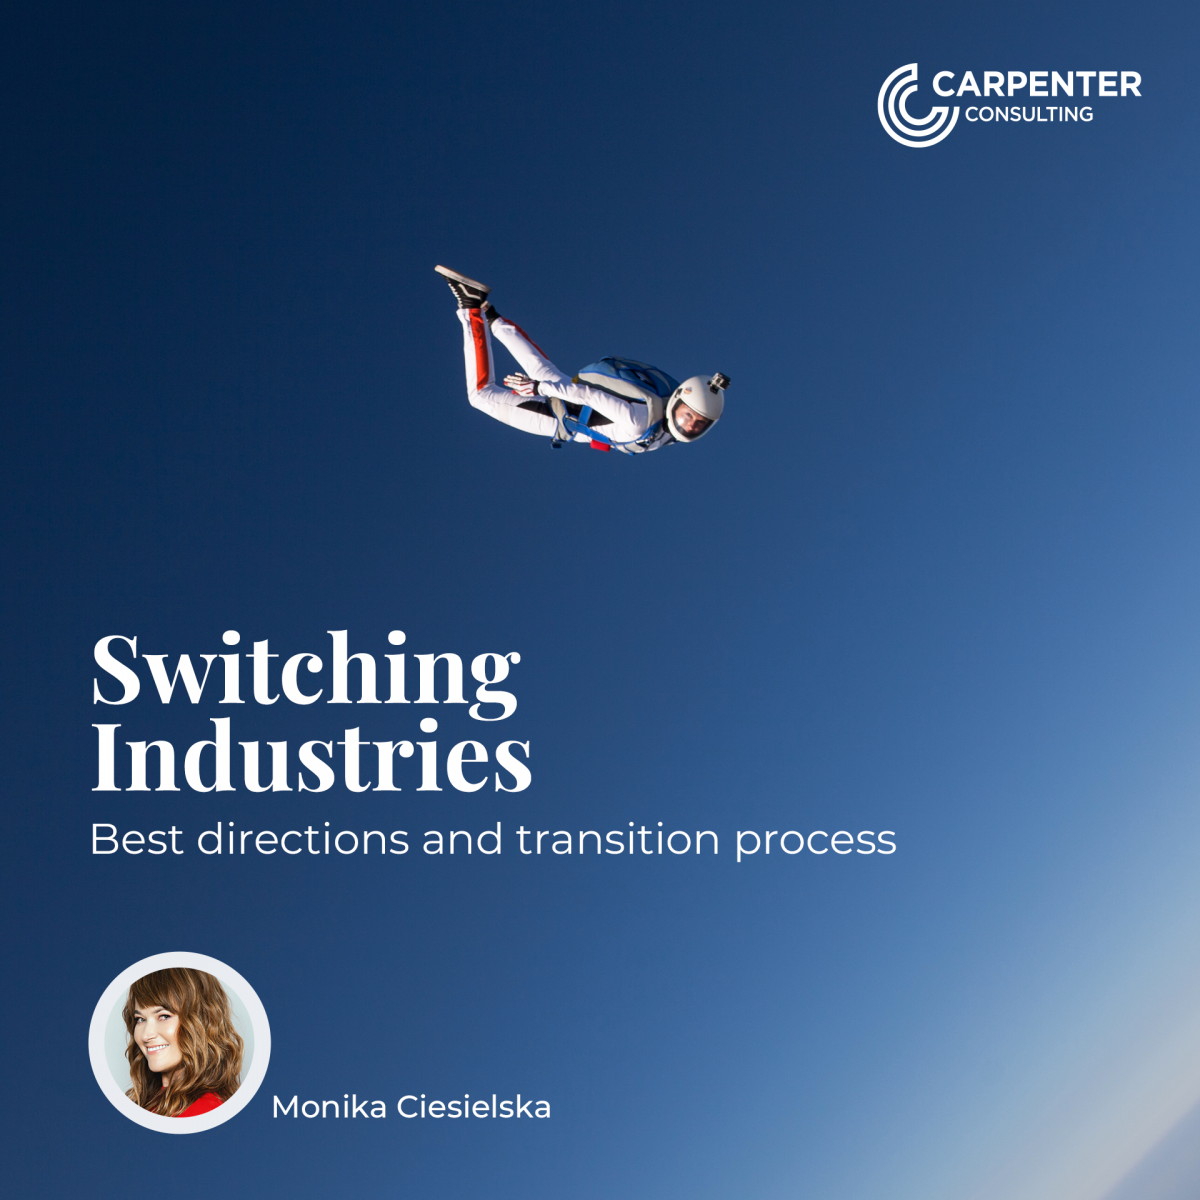 Switching industries